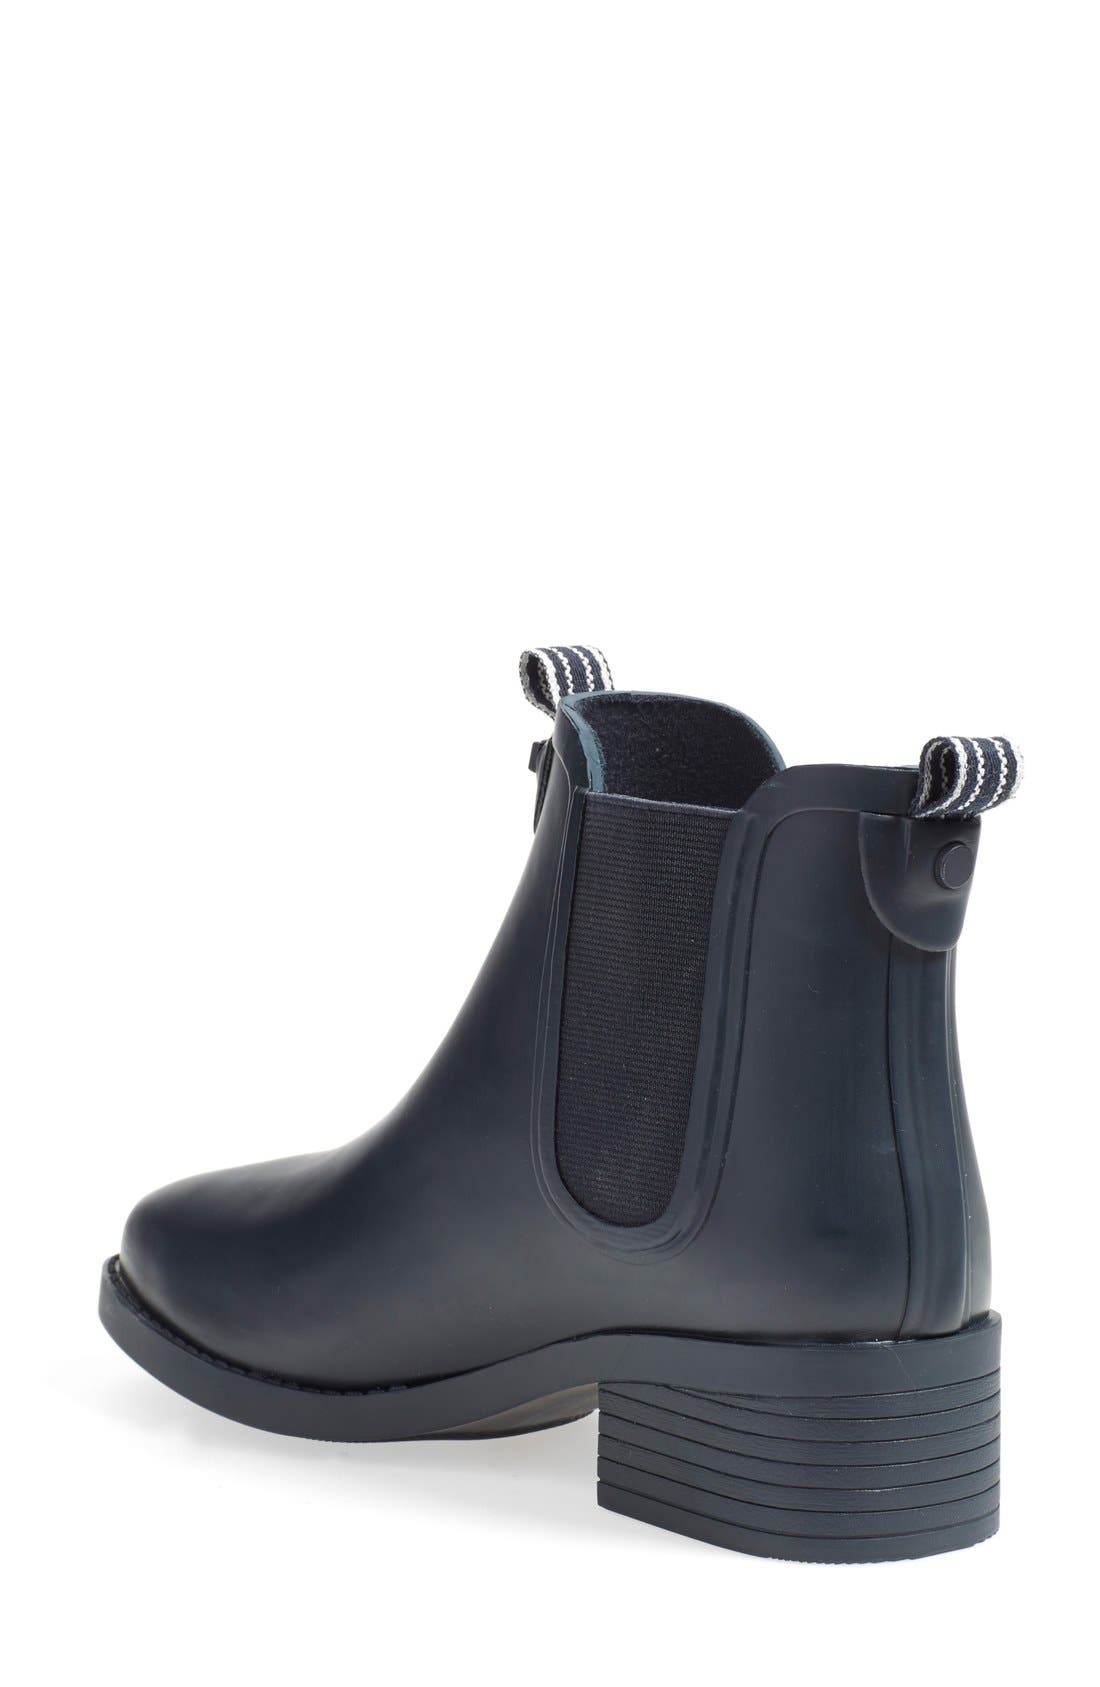 Alternate Image 2  - Tory Burch Chelsea Rain Boot (Women)